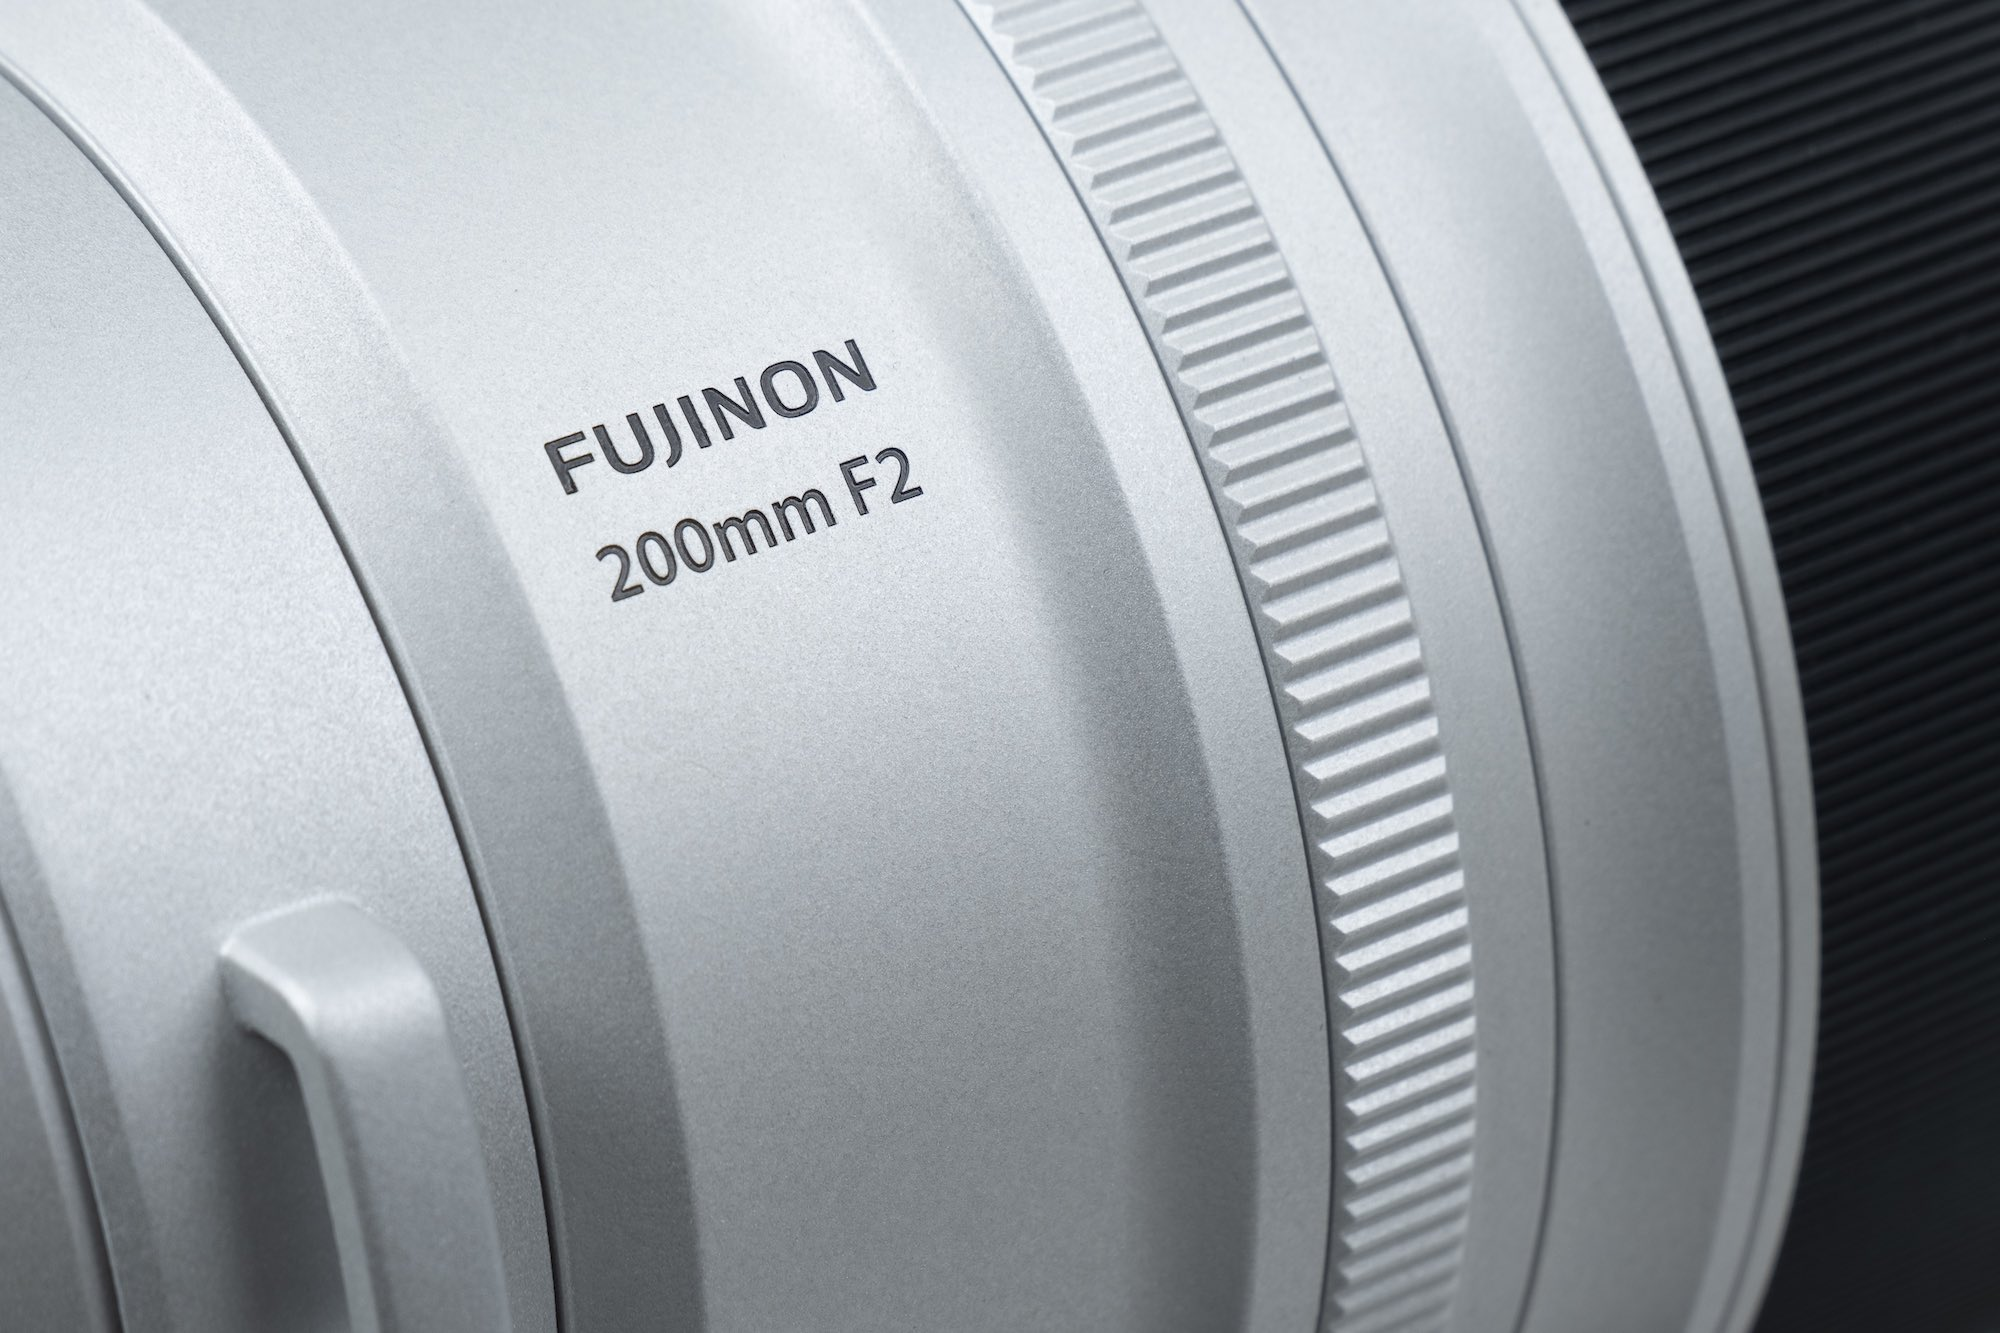 FUJINON 200mm F2 Lens FUJIFILMproduct photography services singapore studio photographer asia ecommerce technology tech camera digital